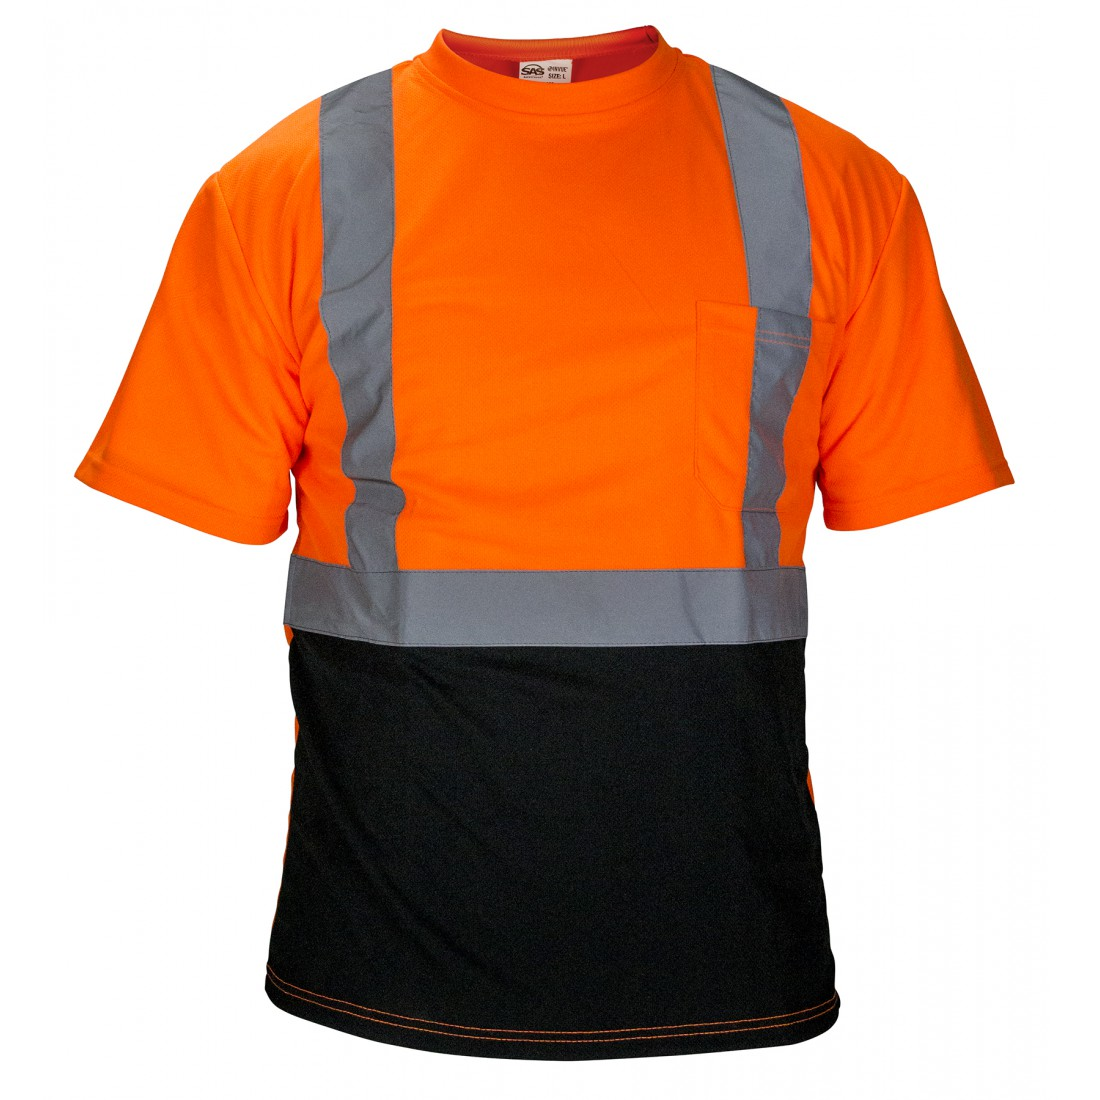 class-2-black-bottom-t-shirt-sas-safety